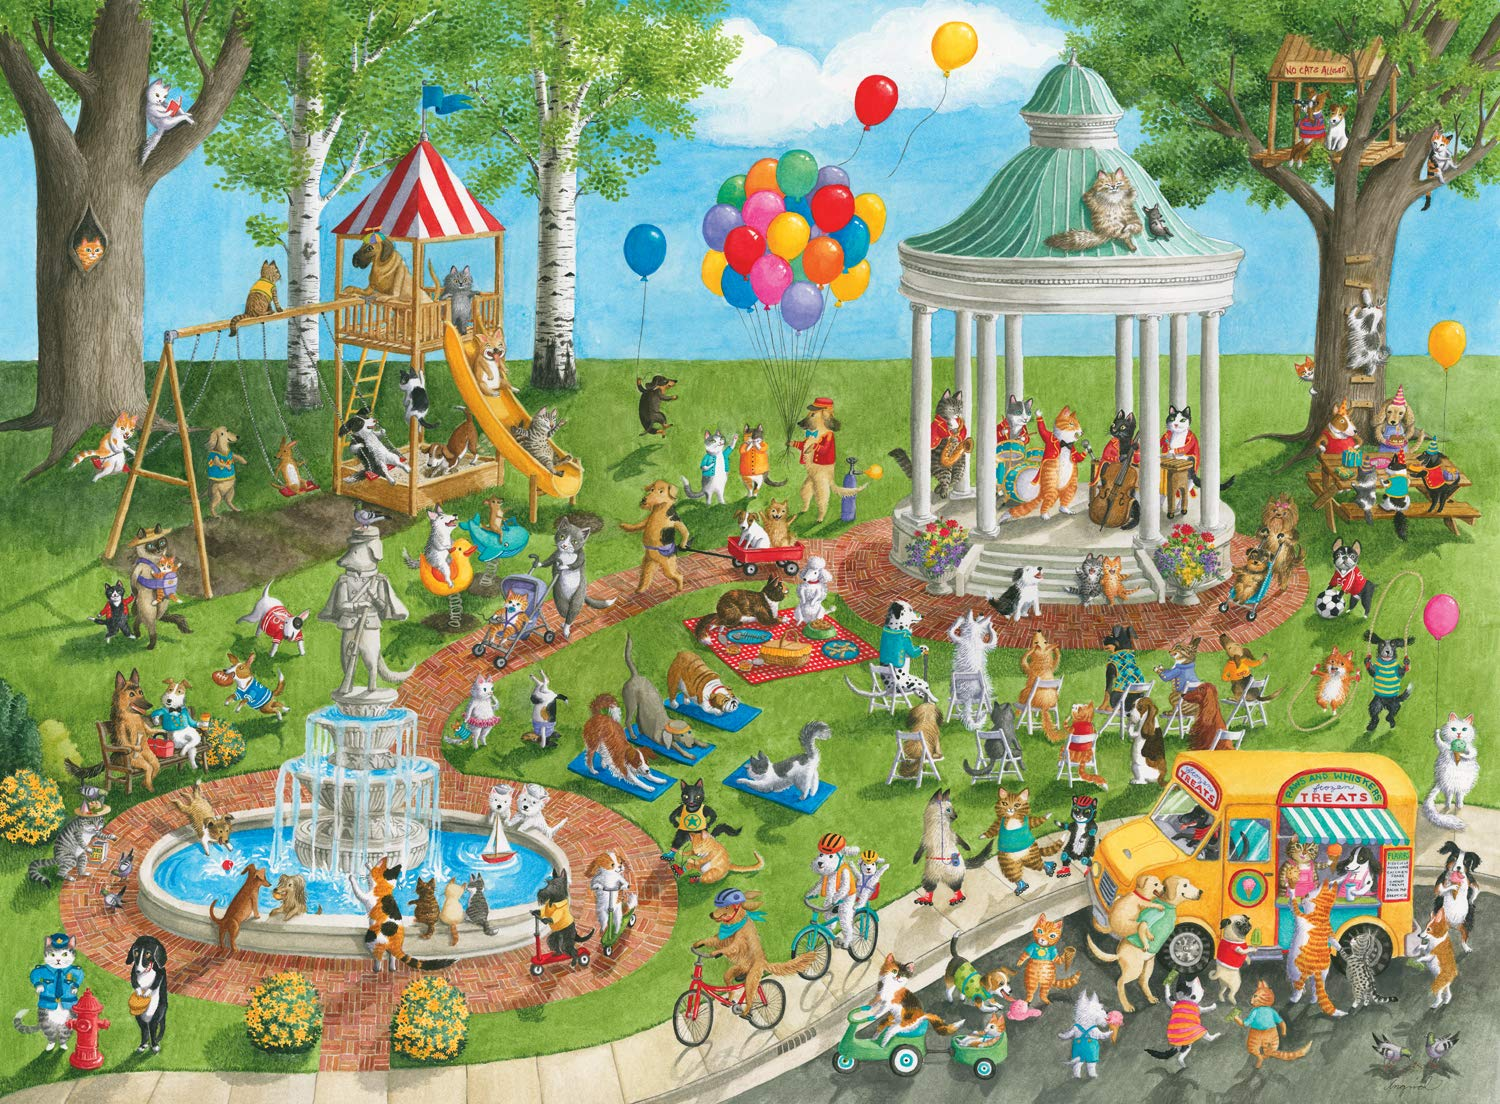 Ravensburger Pet Park - 300 Piece Jigsaw Puzzle for Kids – Every Piece is Unique, Pieces Fit Together Perfectly